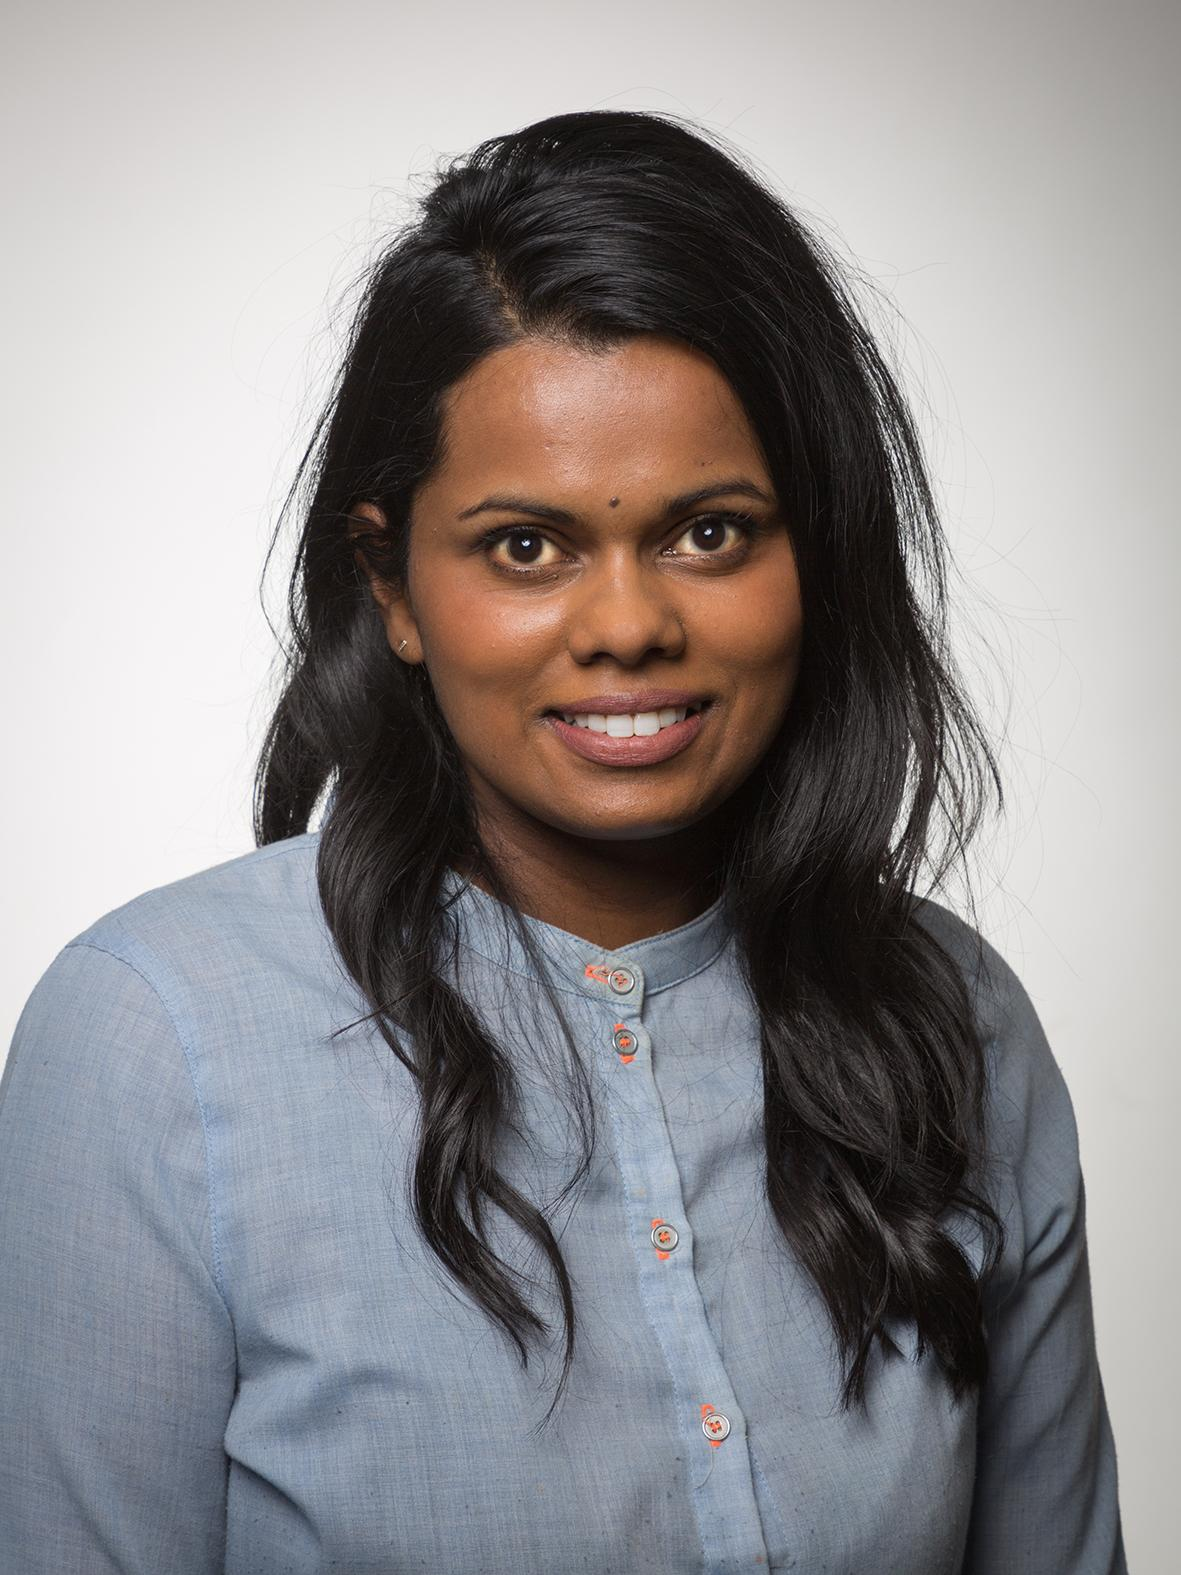 Photo of Jeevitha Yogachandiran Qvist